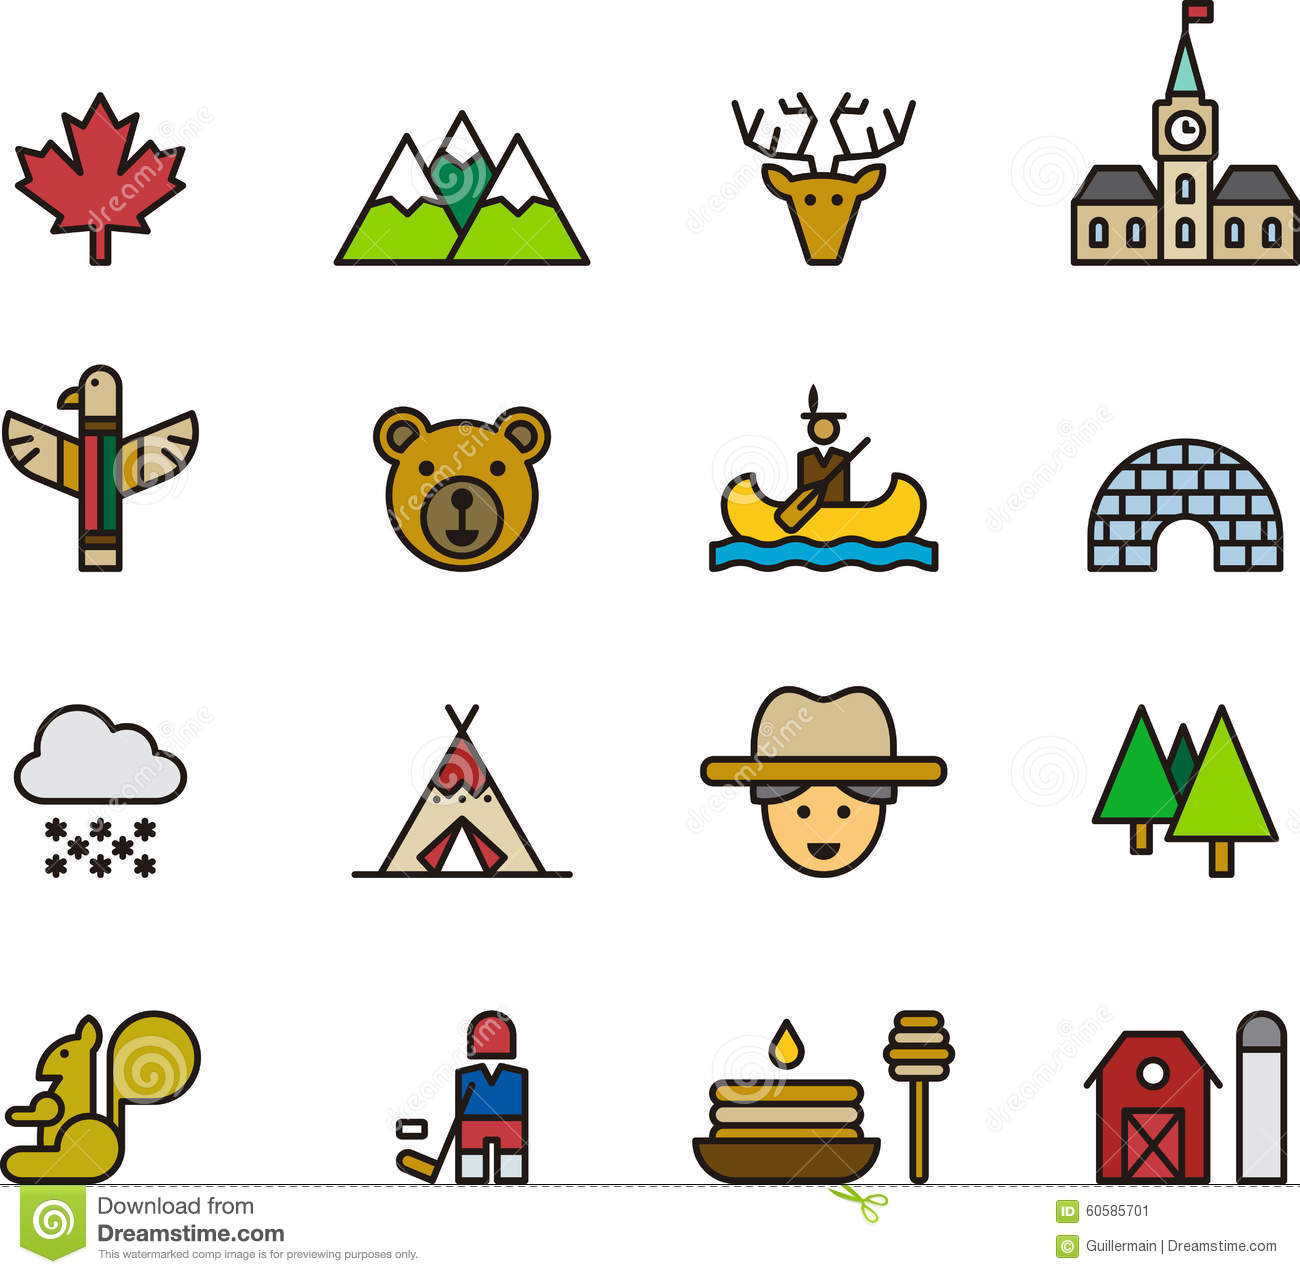 Icons and Symbols of Canada